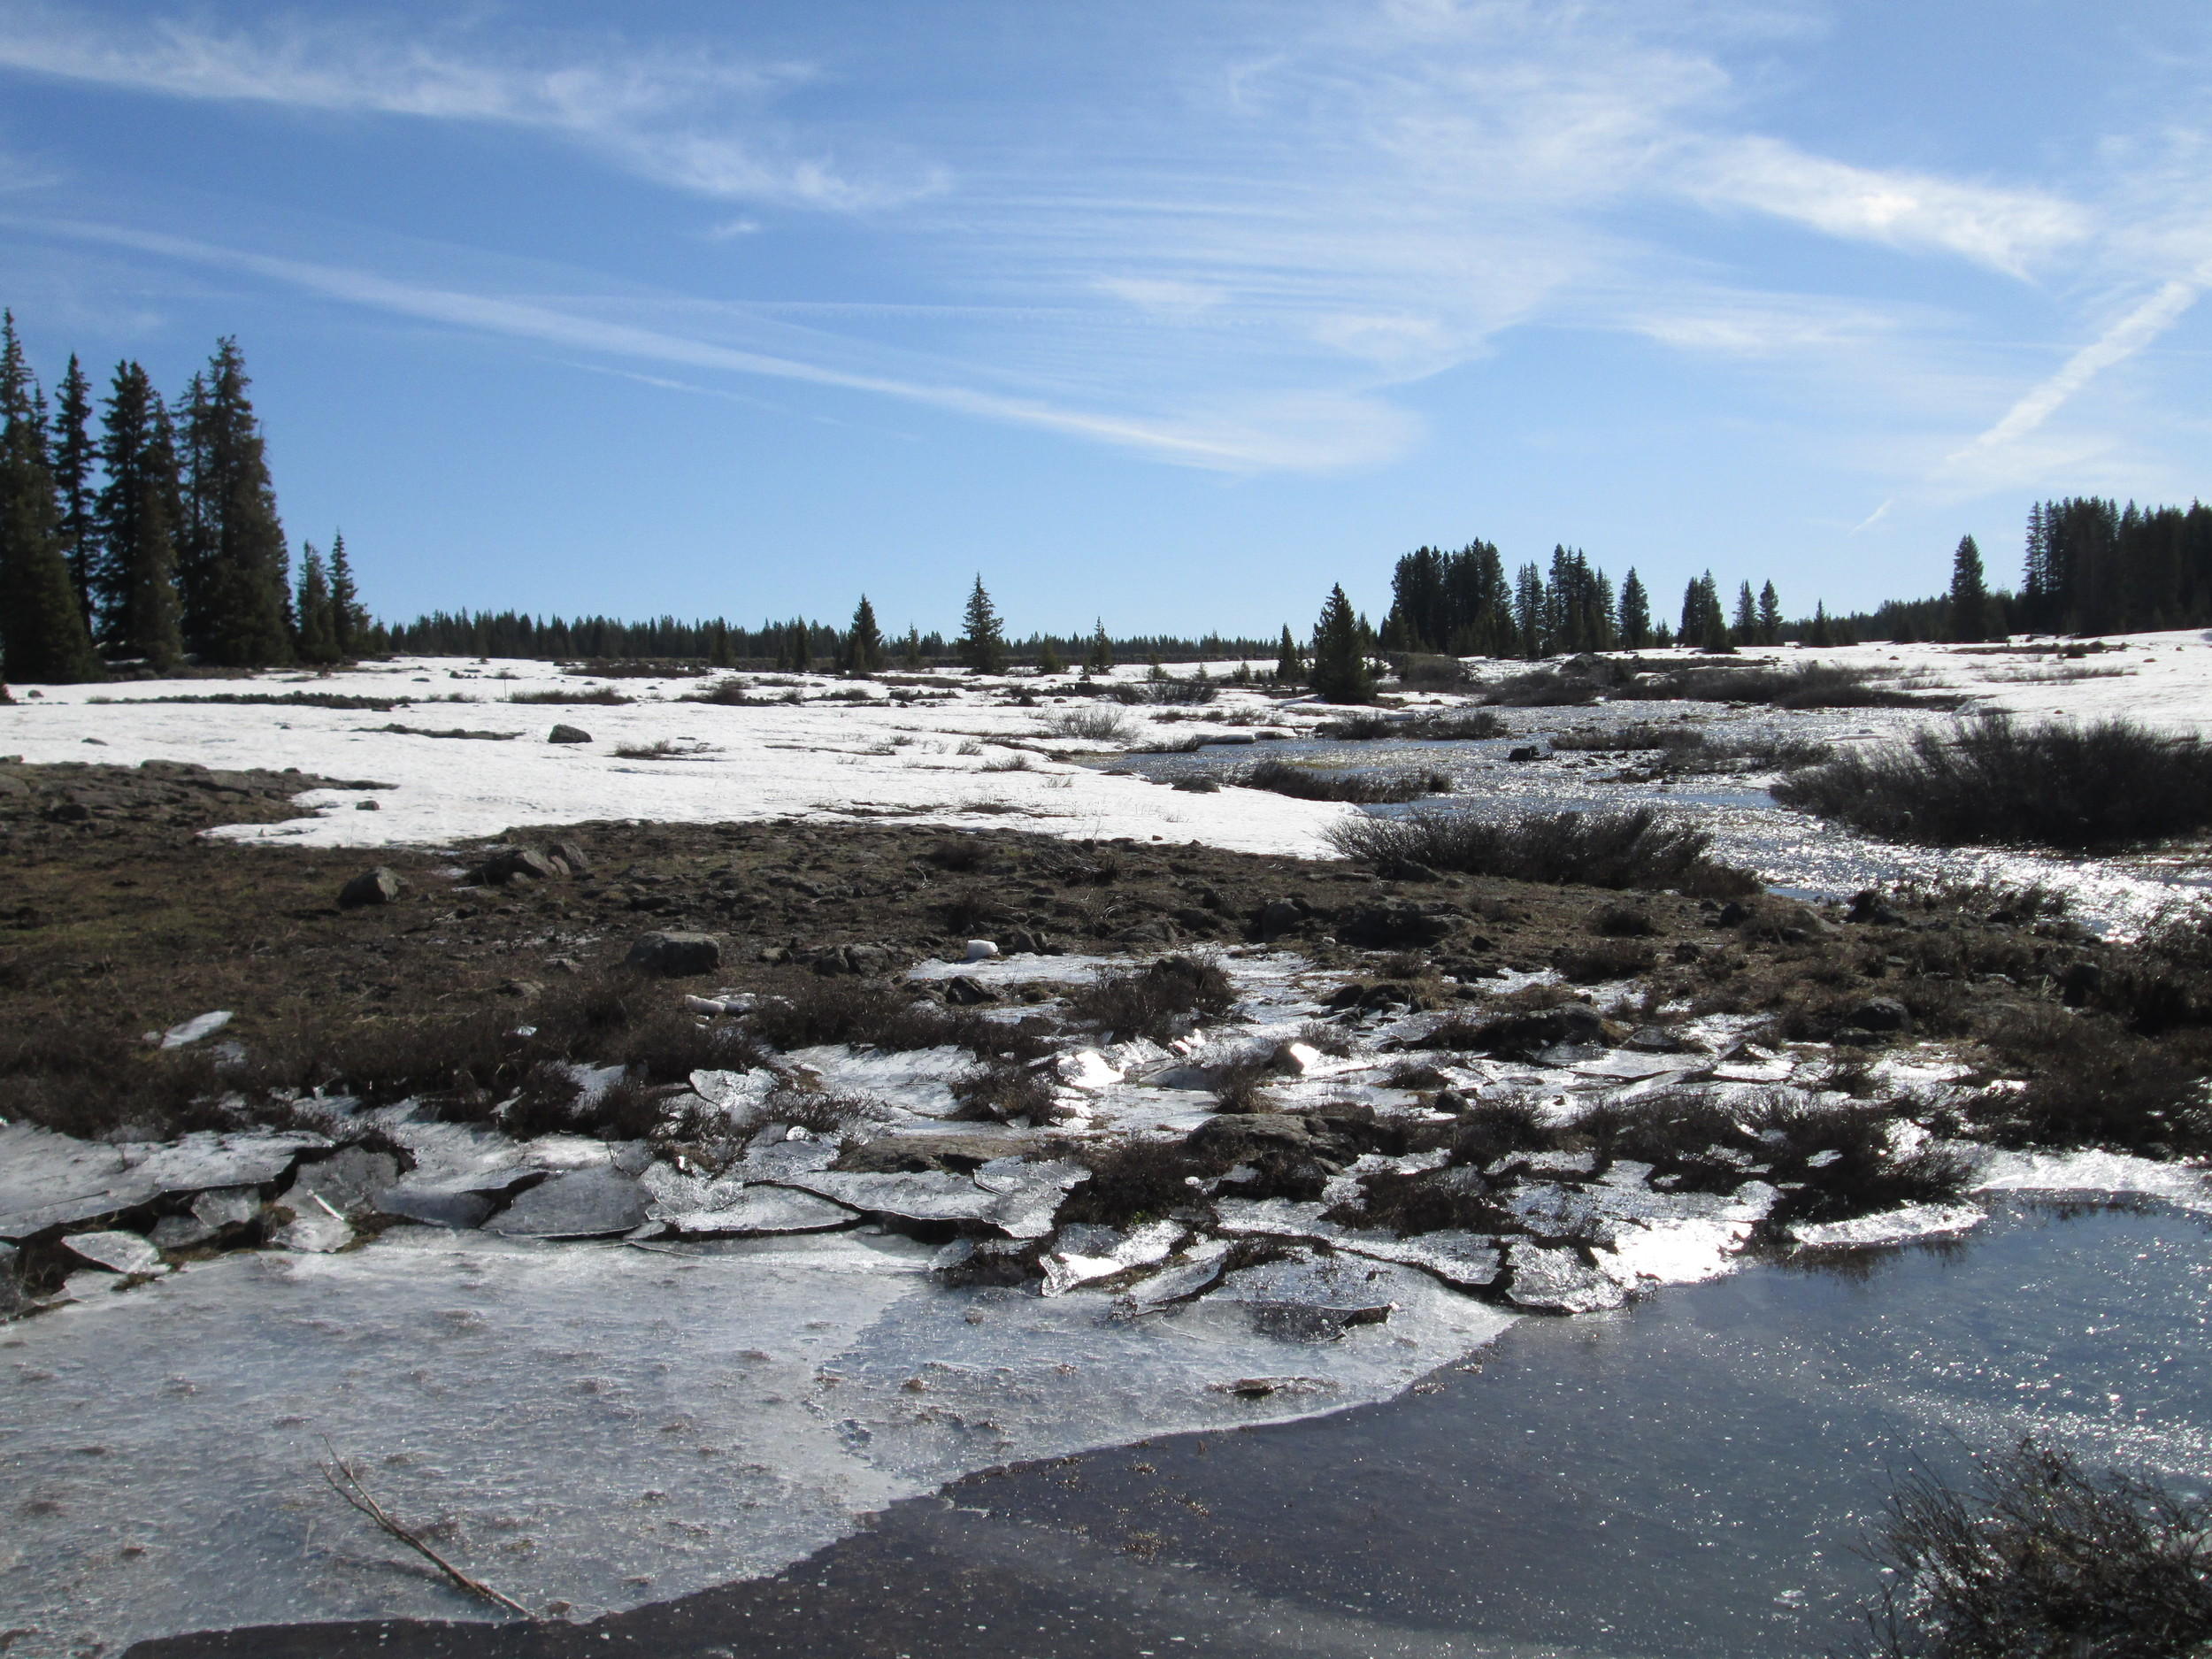 Open parks on the top of the Grand Mesa were rapidly losing snowcover and generating widespread sheet flow of snowmelt runoff.